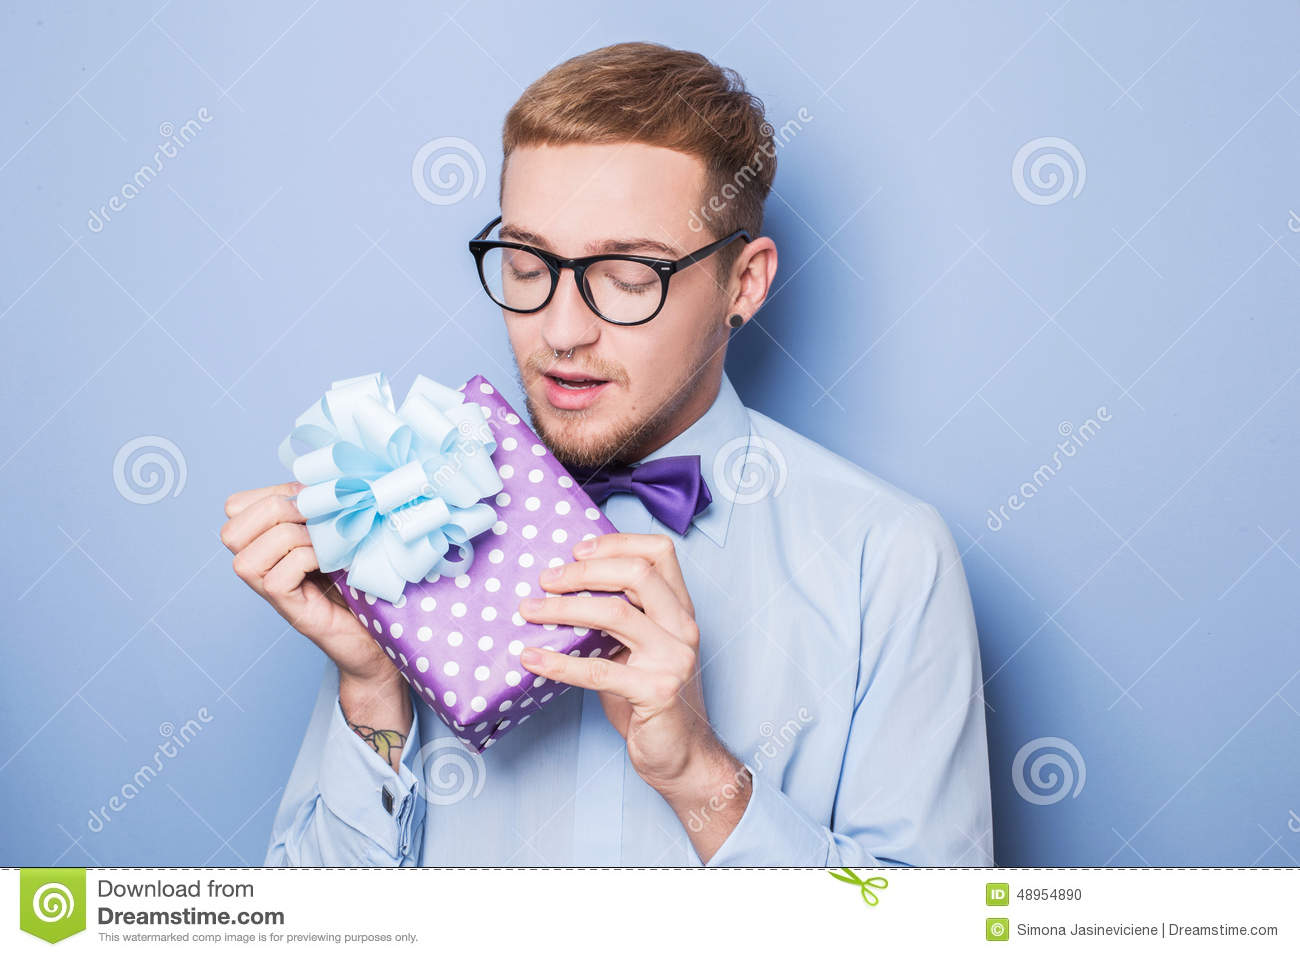 Gifts For Young Men: Closeup Portrait Of Happy Excited Young Man With Colorful